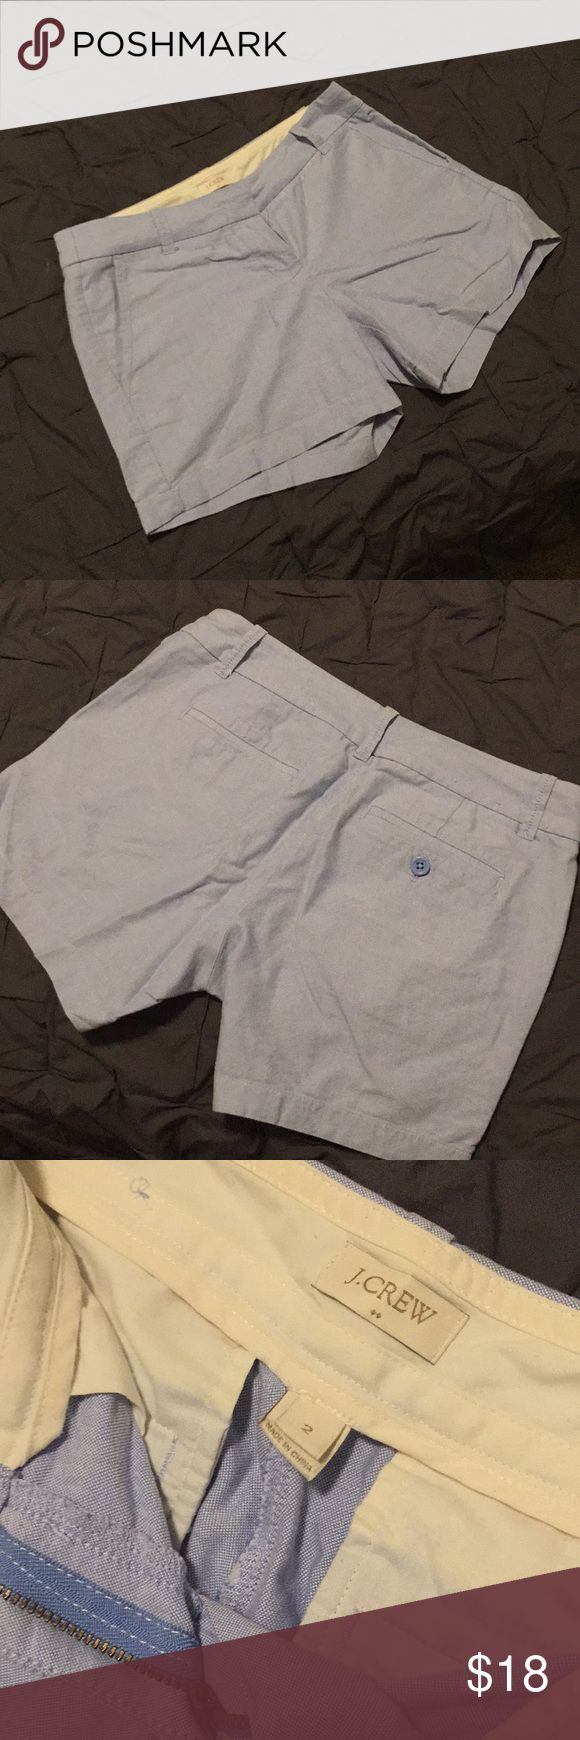 J Crew pastel shorts Like new, cotton light blue shorts from J crew. Has 4 pockets. Has a comfortable loose fit, size 2. J. Crew Shorts